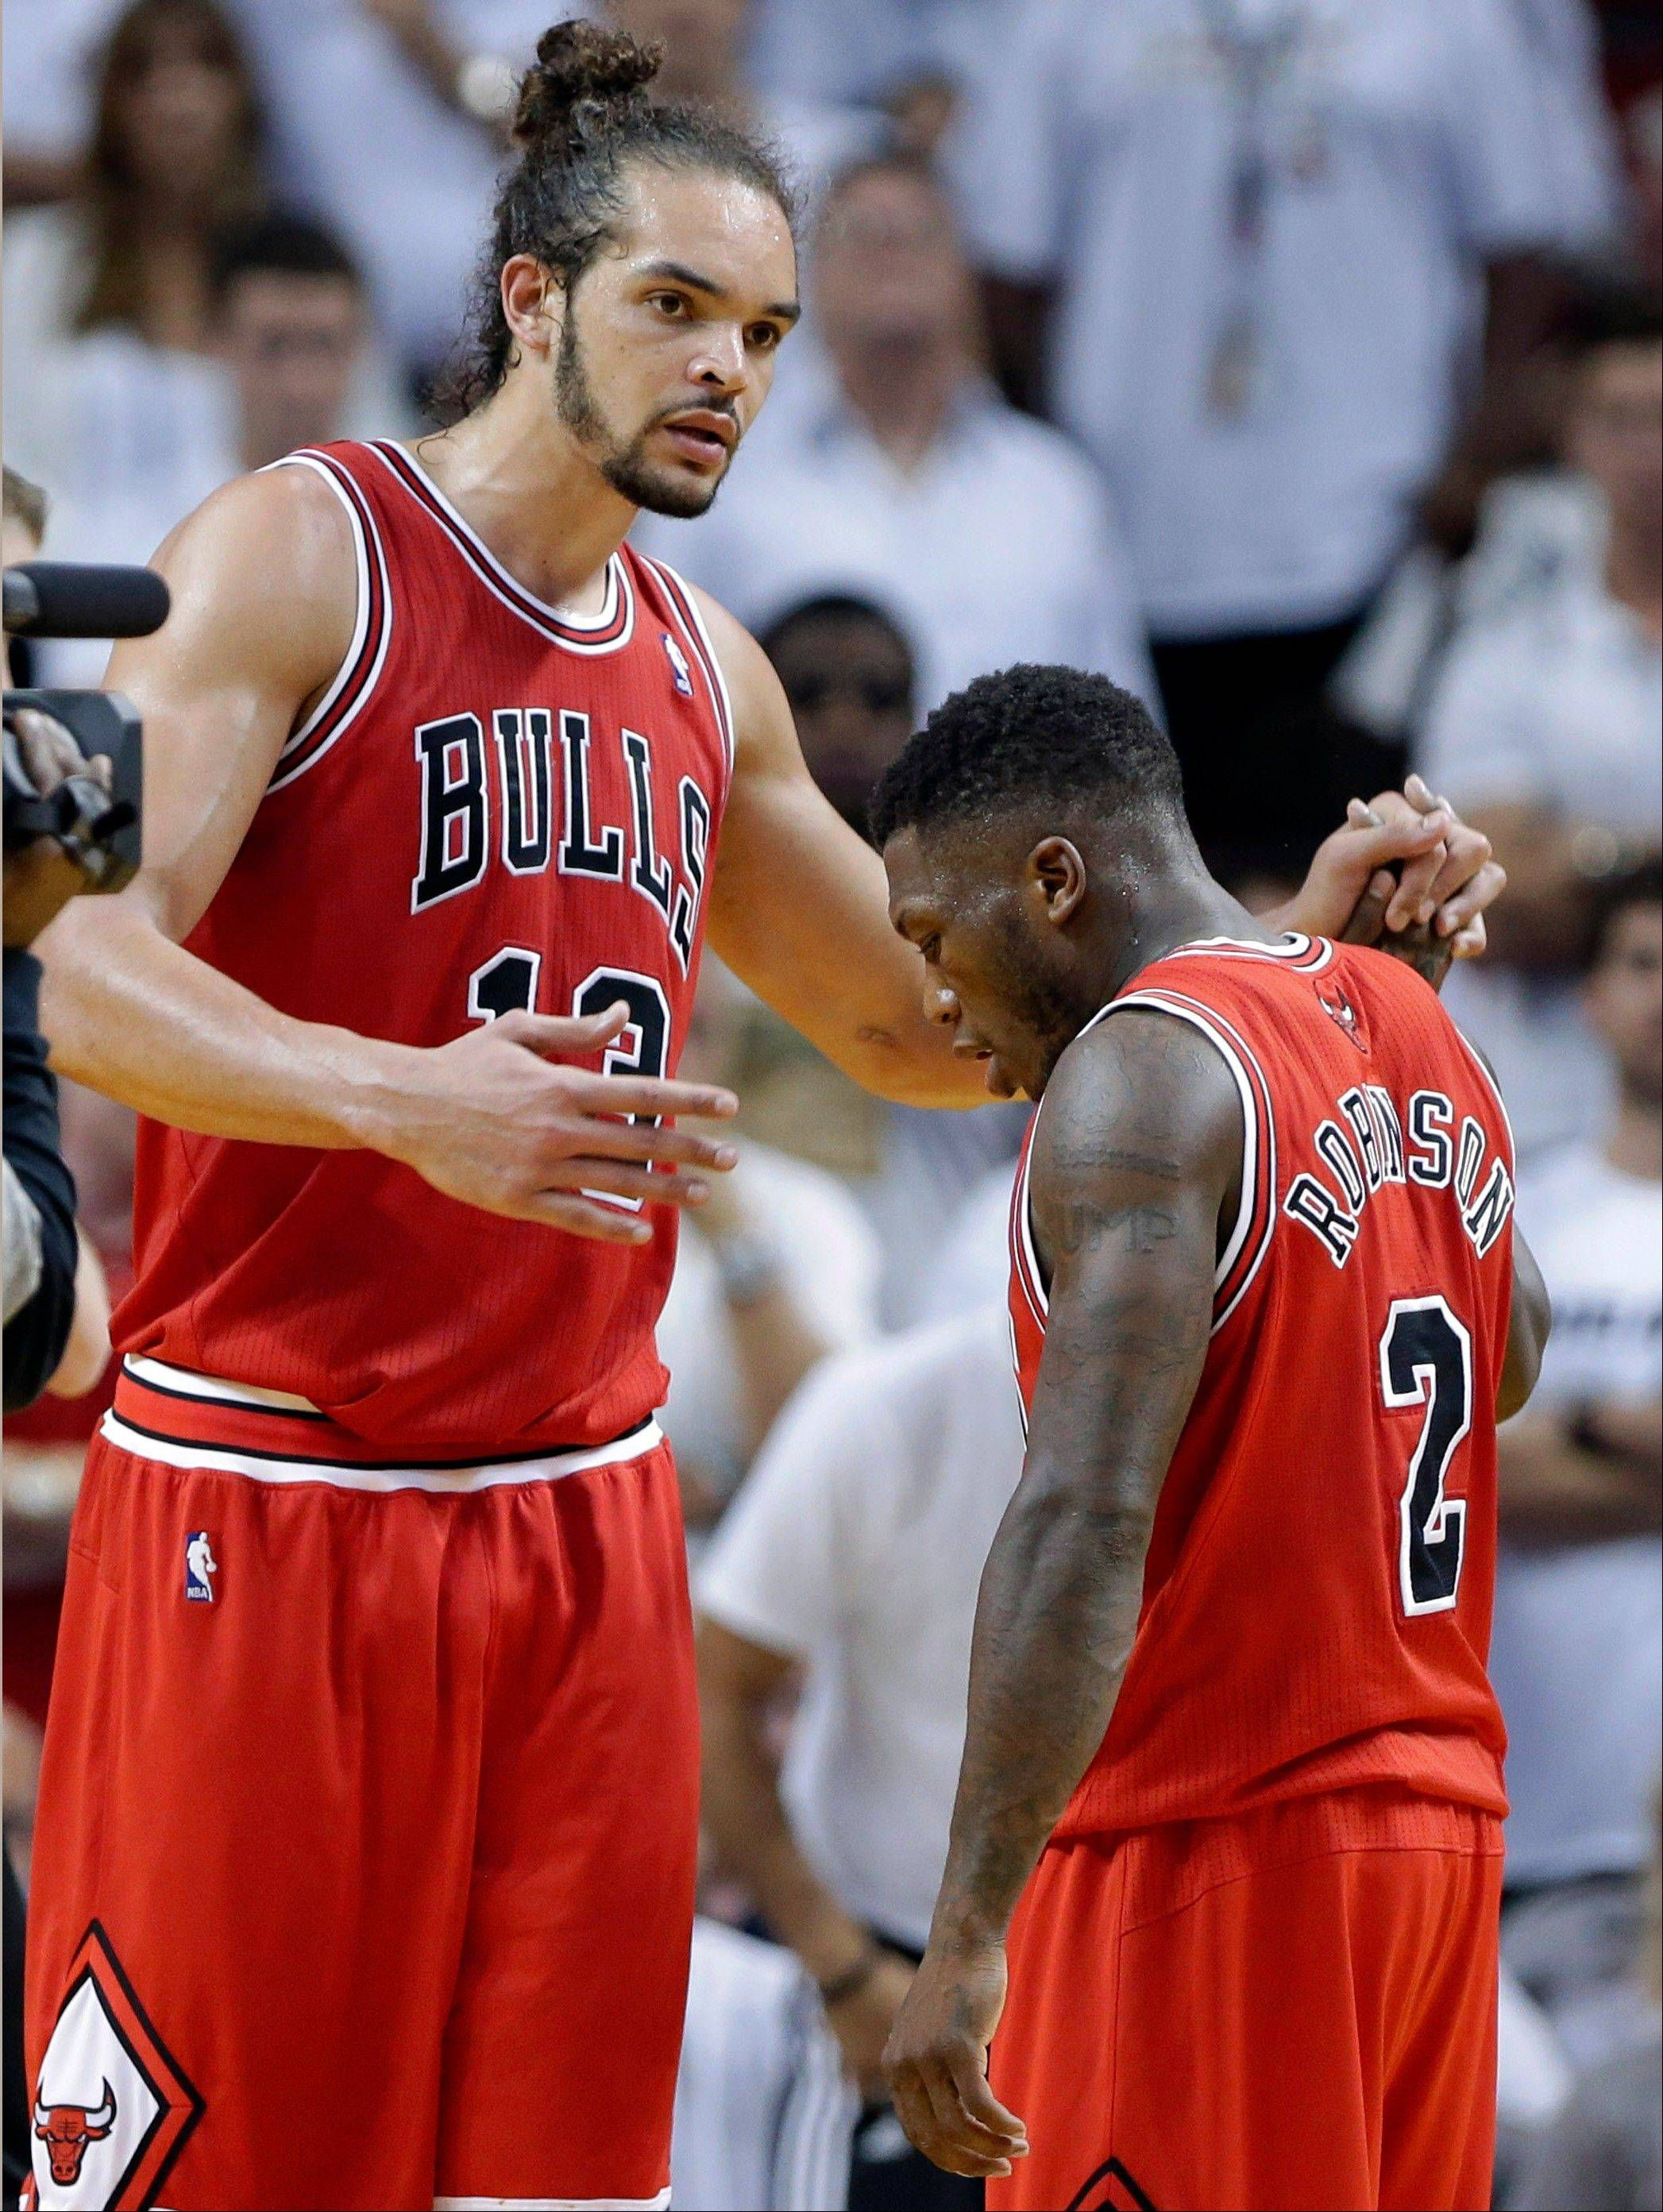 Chicago Bulls' Joakim Noah, left, clasps hands with Nate Robinson (2) during the second half in Game 1 of their NBA basketball playoff series against the Miami Heat in the Eastern Conference semifinals, Monday, May 6, 2013, in Miami. The Bulls defeated the Heat 93-86.